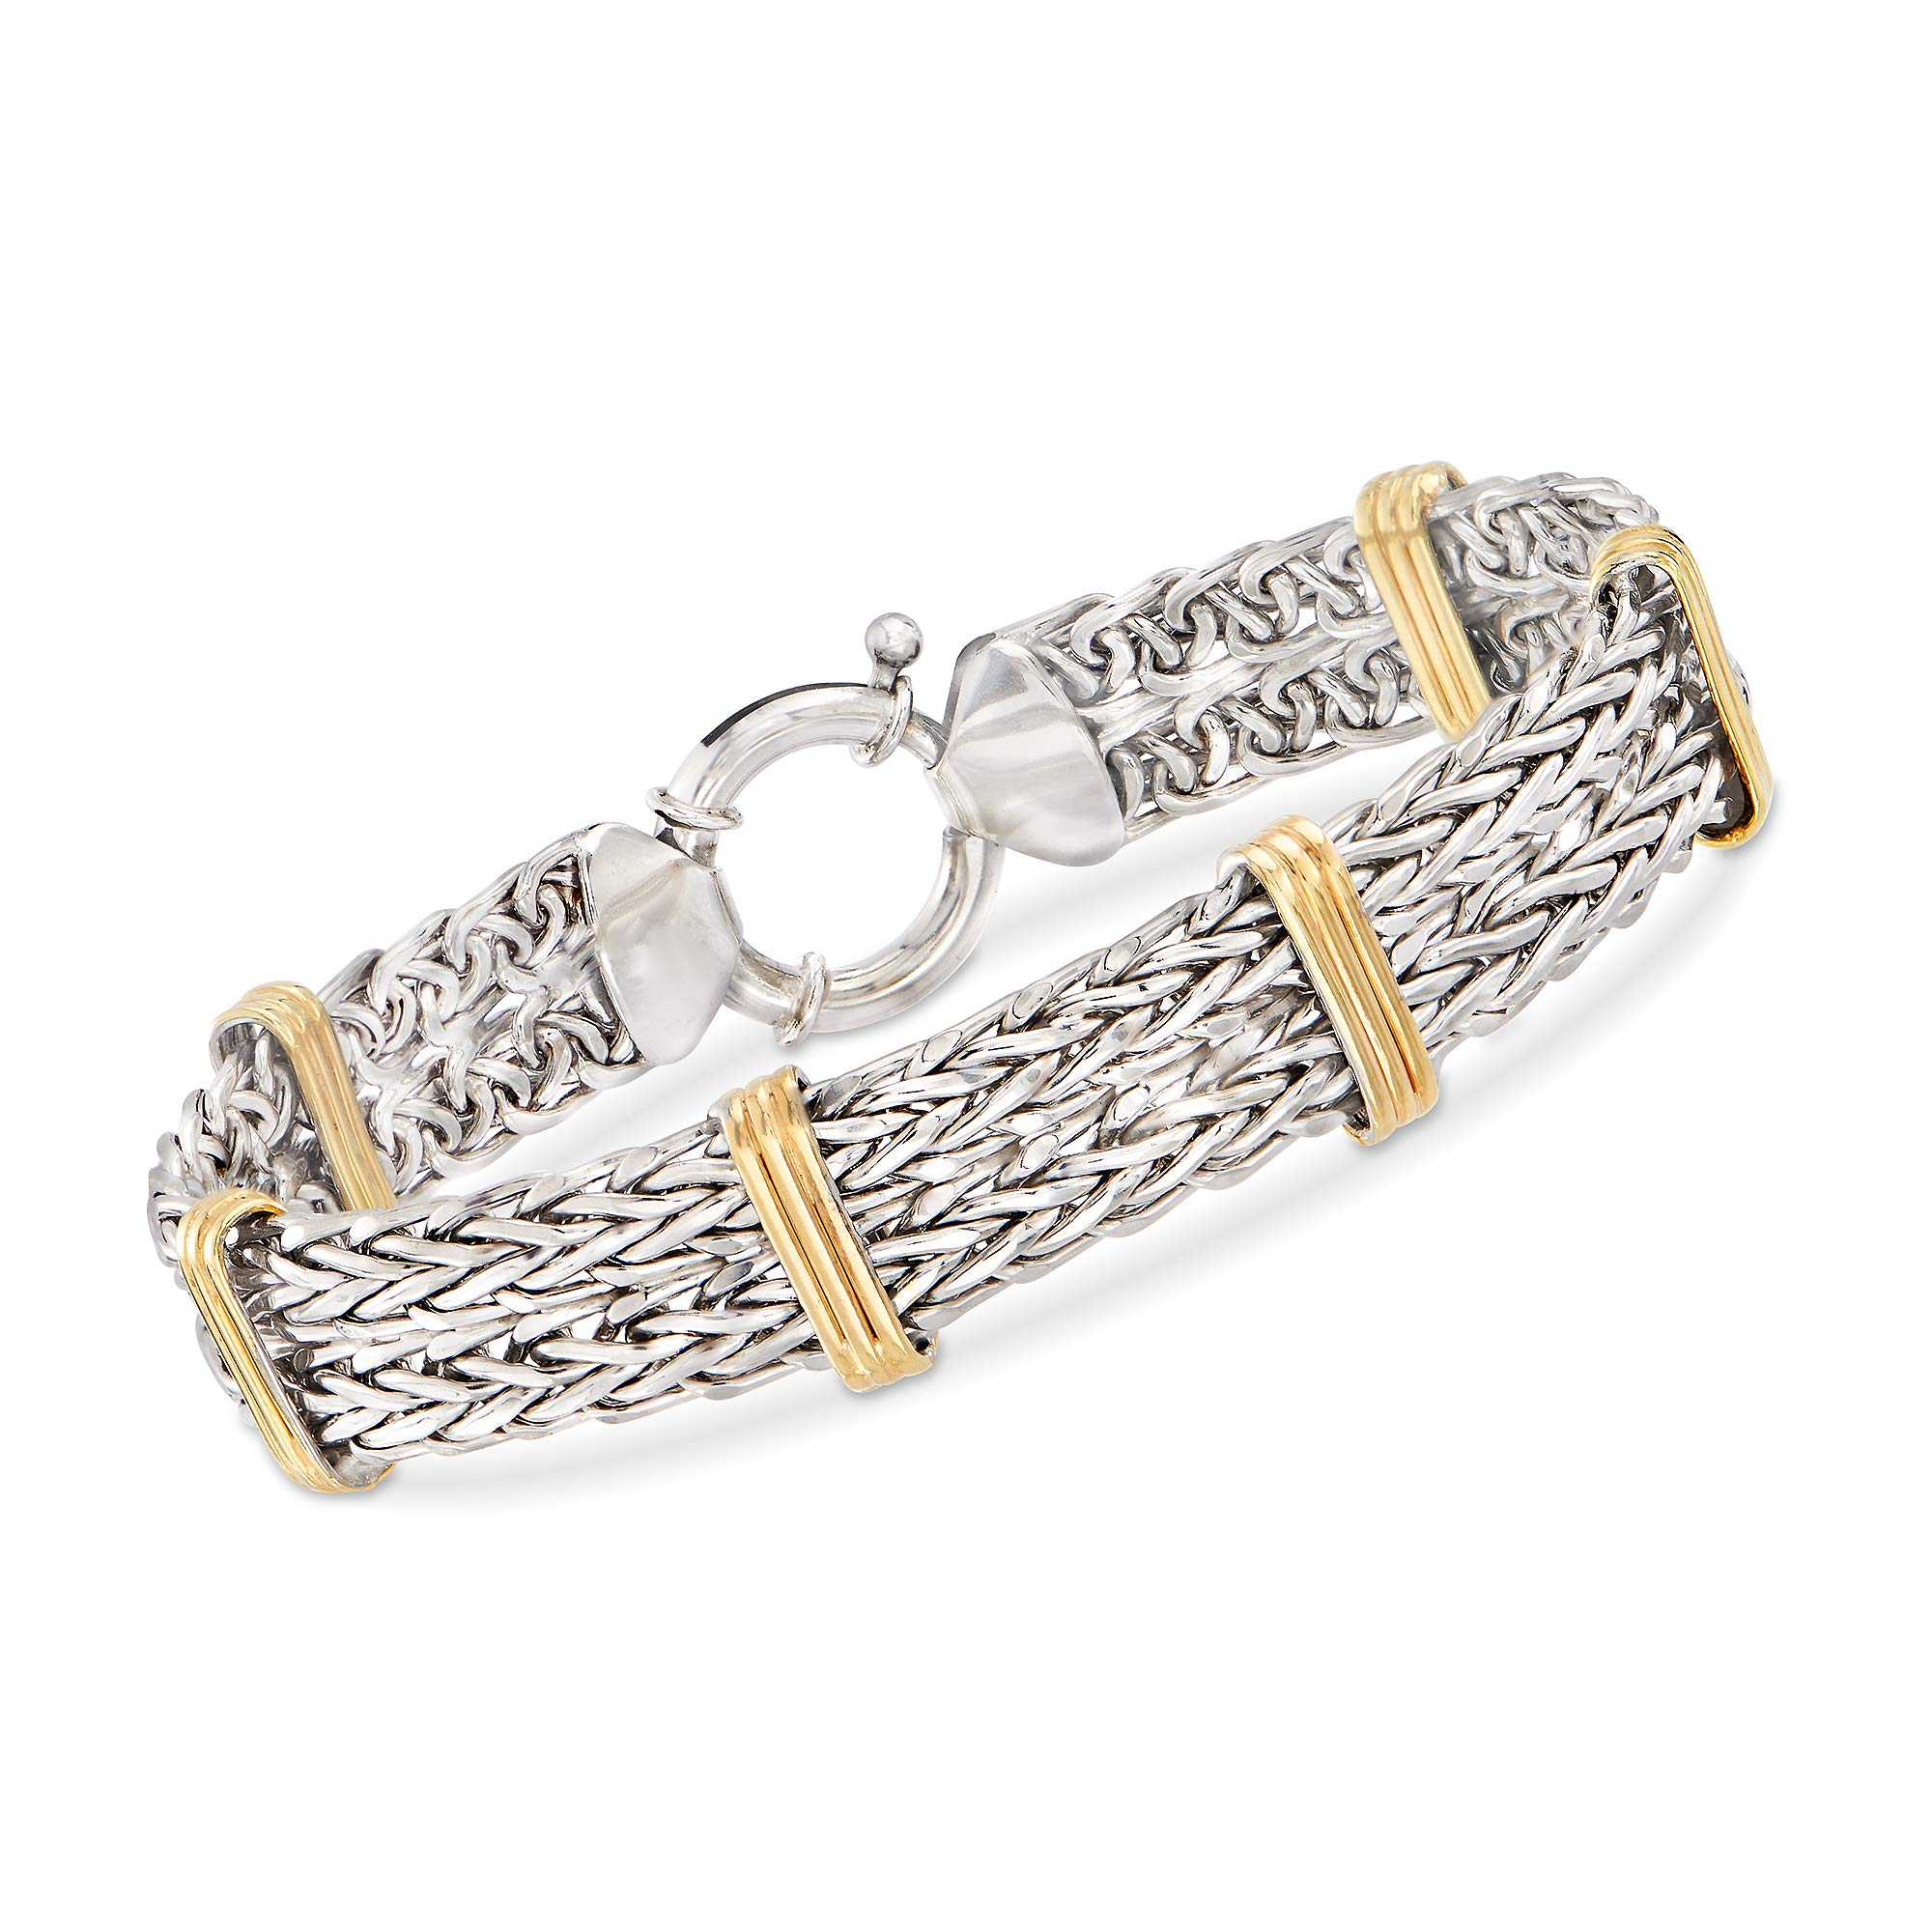 Ross-Simons 2-Tone Double Wheat-Link Bracelet in Sterling Silver and 14kt Gold Over Sterling by Ross-Simons